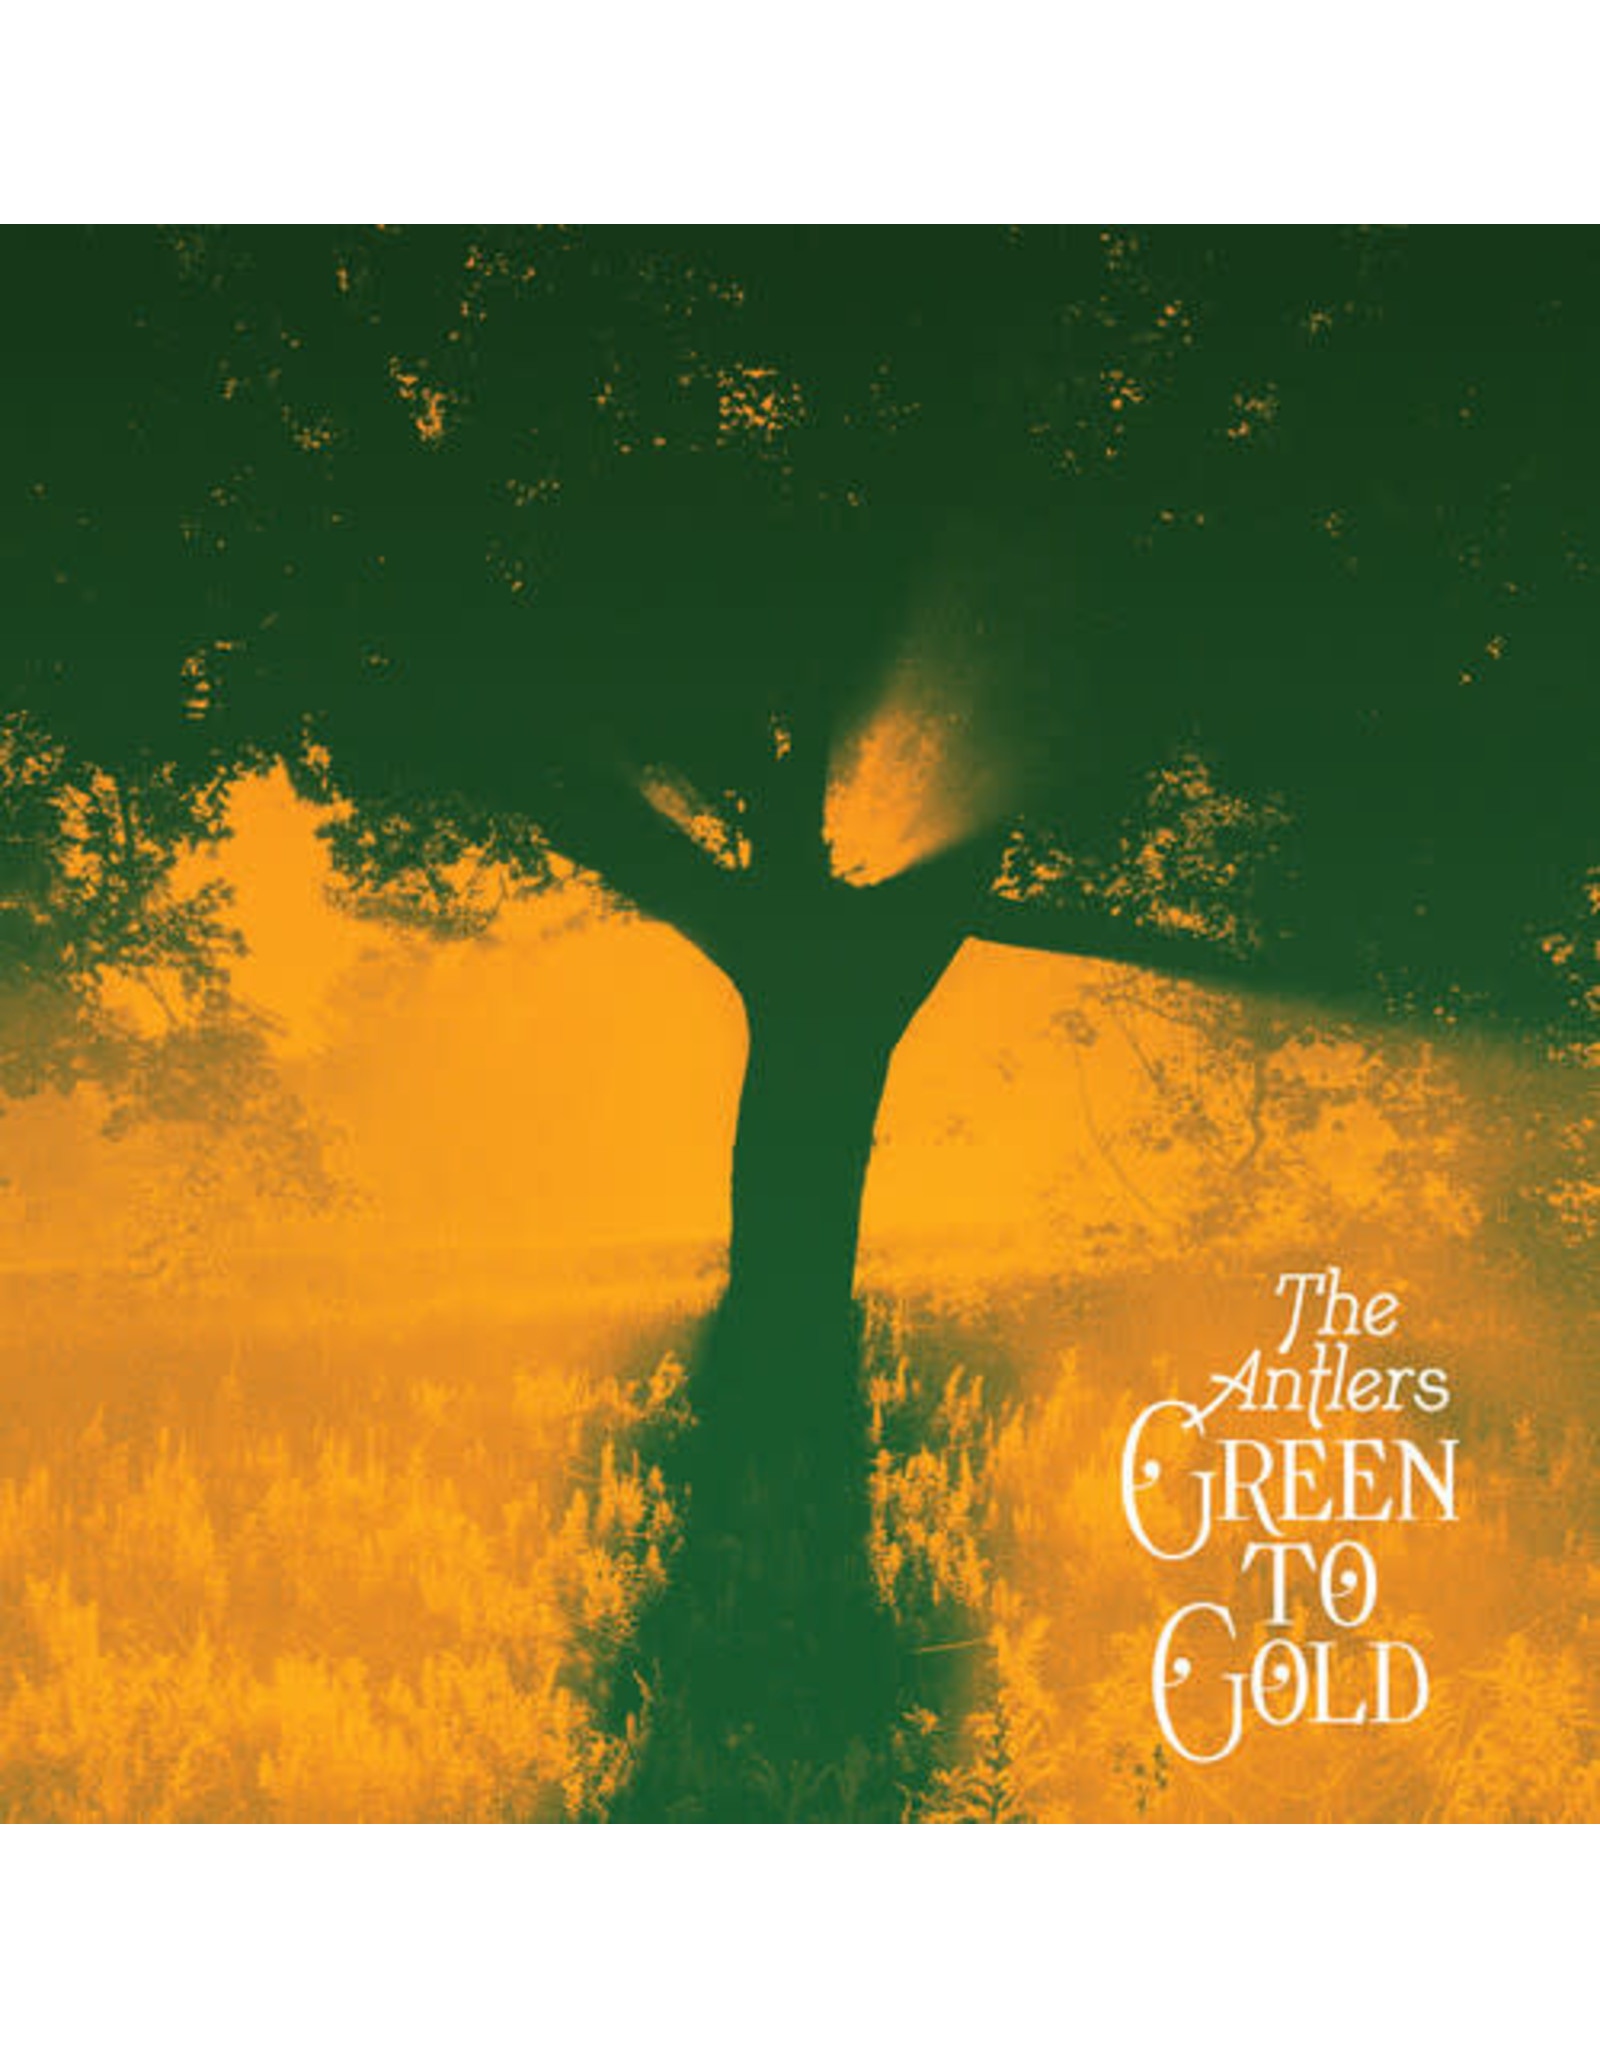 New Vinyl The Antlers - Green To Gold (Colored) LP